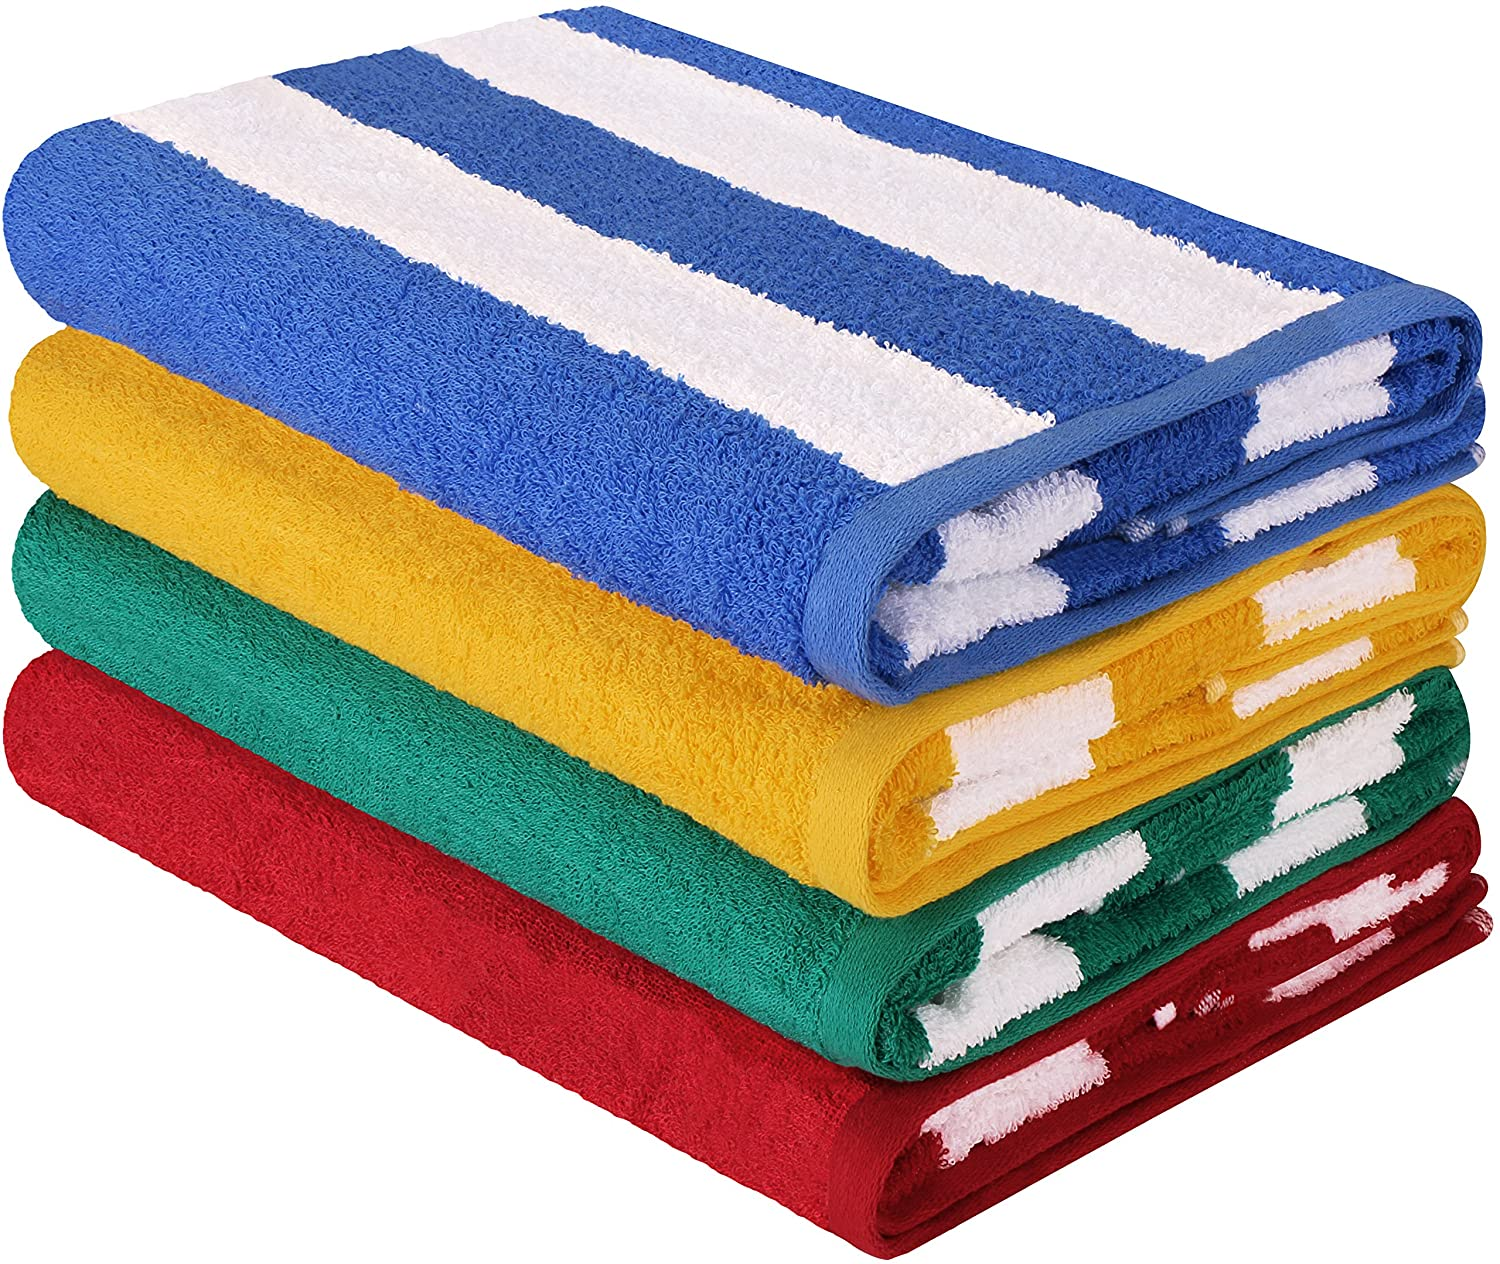 Utopia Towels Premium Quality Cabana Beach Towels - Pack of 4 Cabana Stripe Pool Towels (30 x 60 Inches) - Multi Color Towels with High Absorbency by